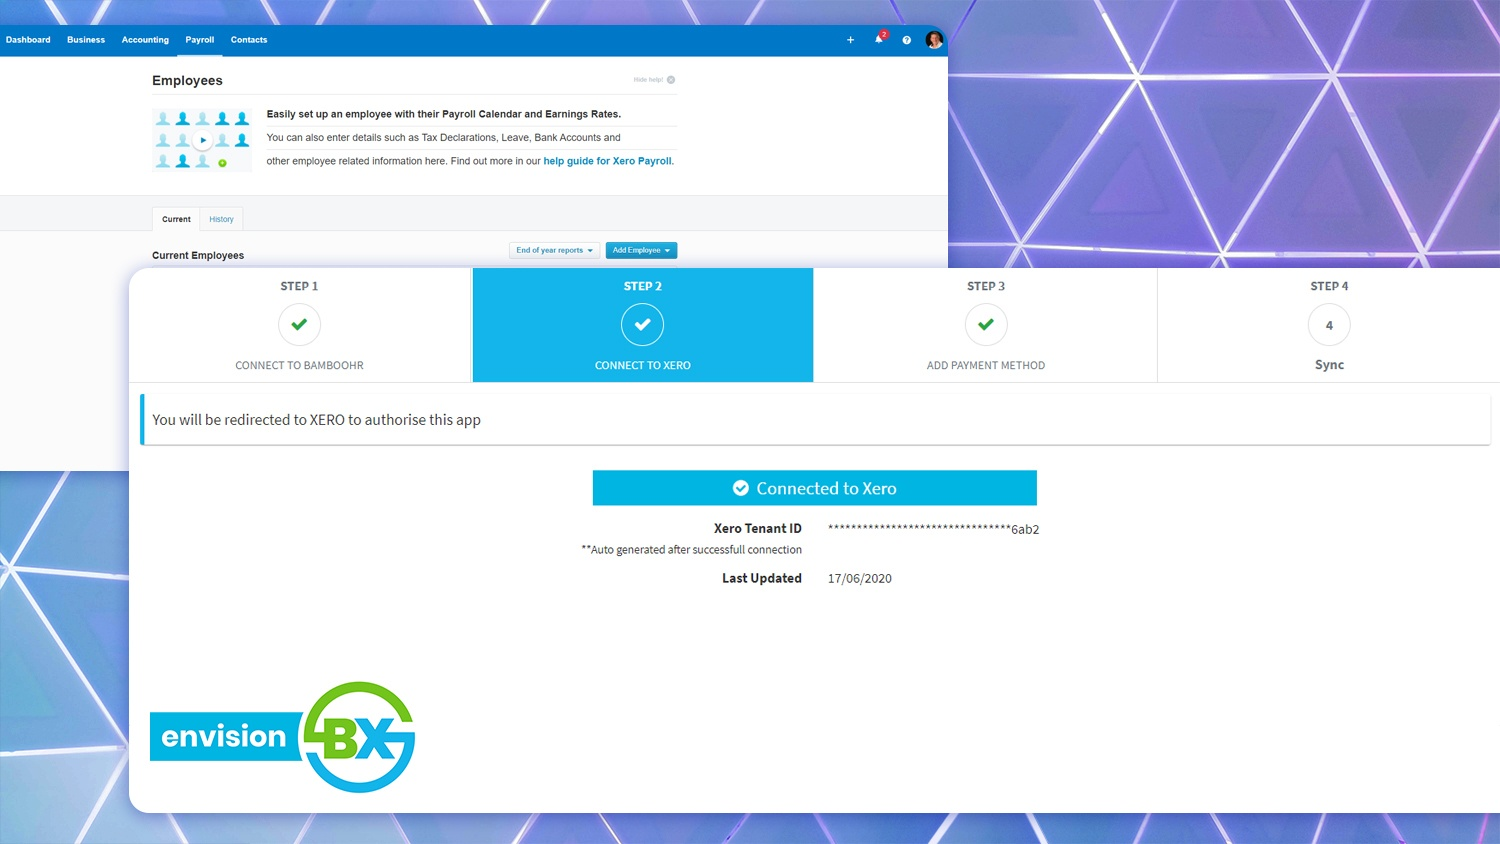 Step 2 - Connect to Xero